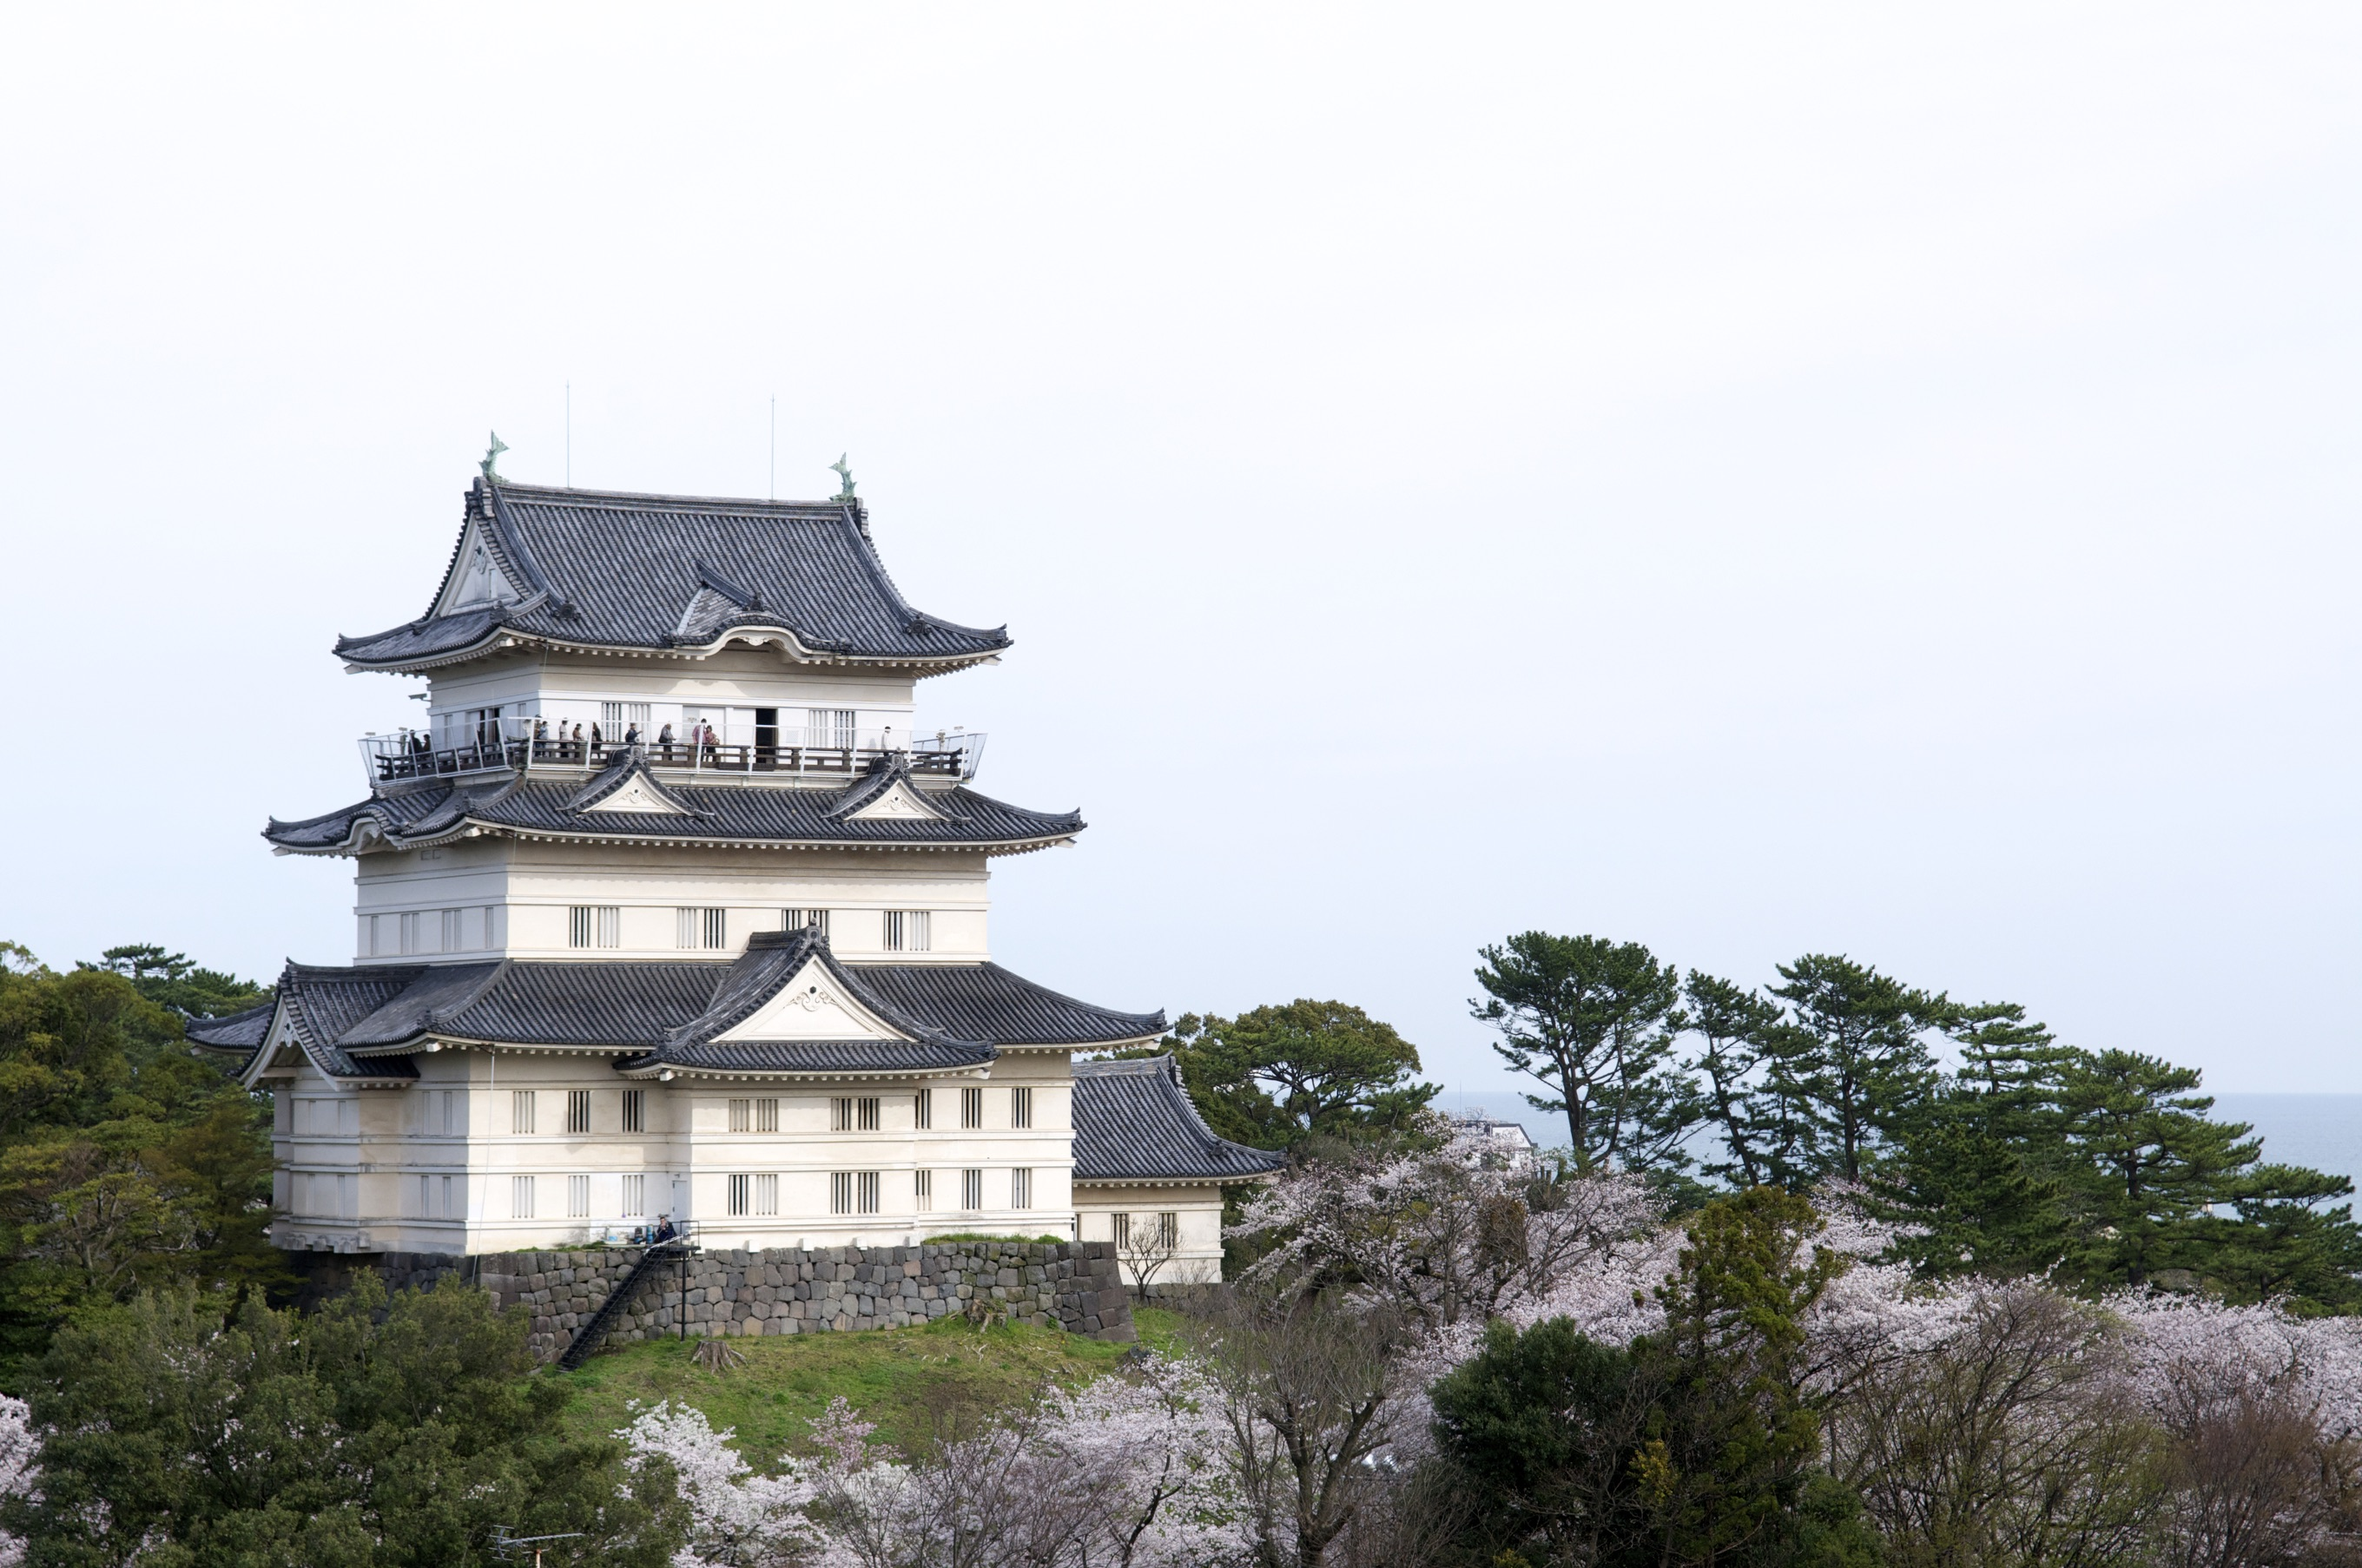 https://blog.gaijinpot.com/app/uploads/sites/6/2016/08/Odawara-Castle-.jpg